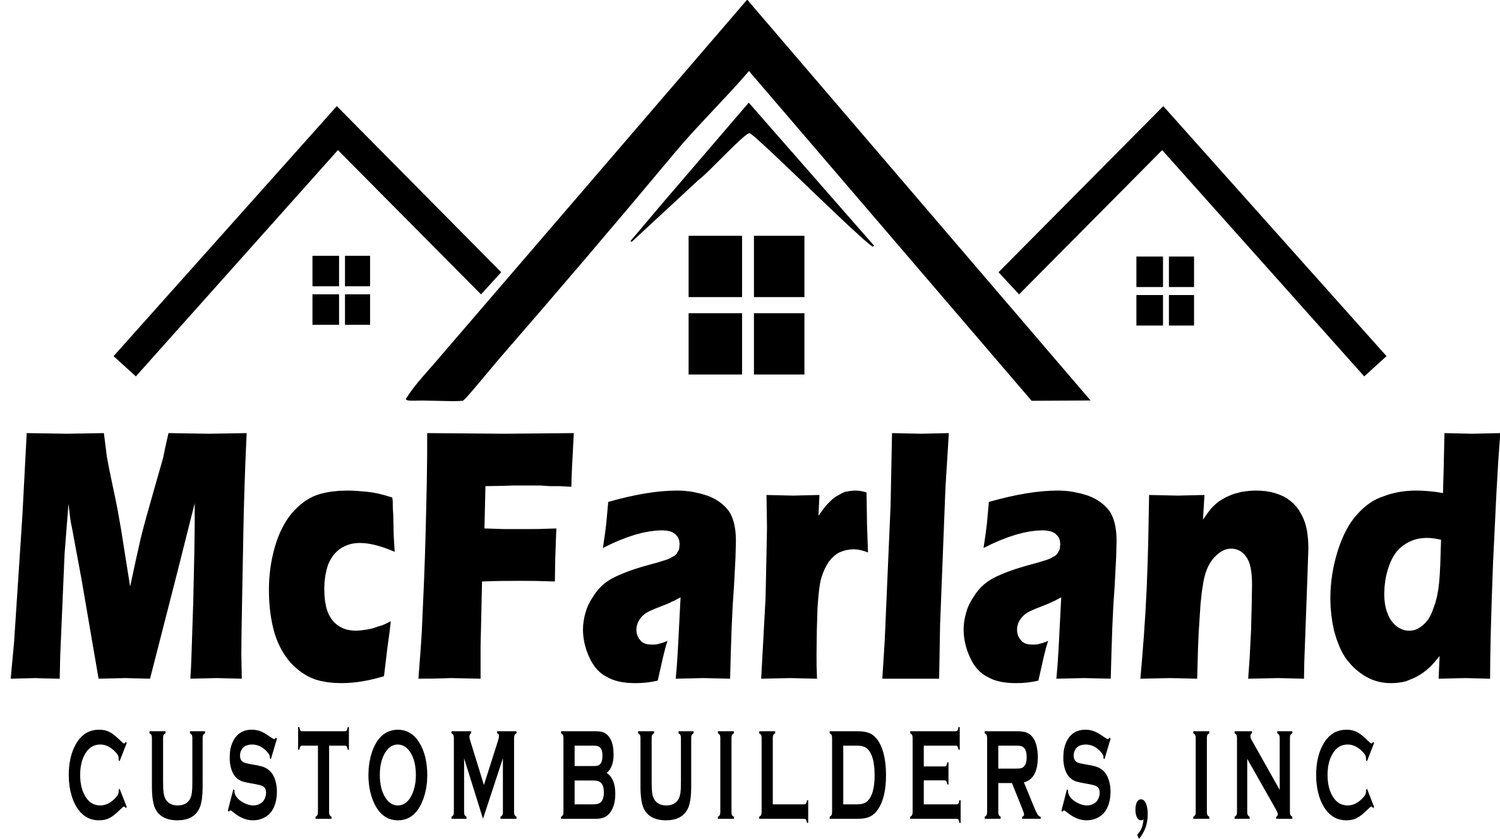 McFarland Custom Builders, Inc.